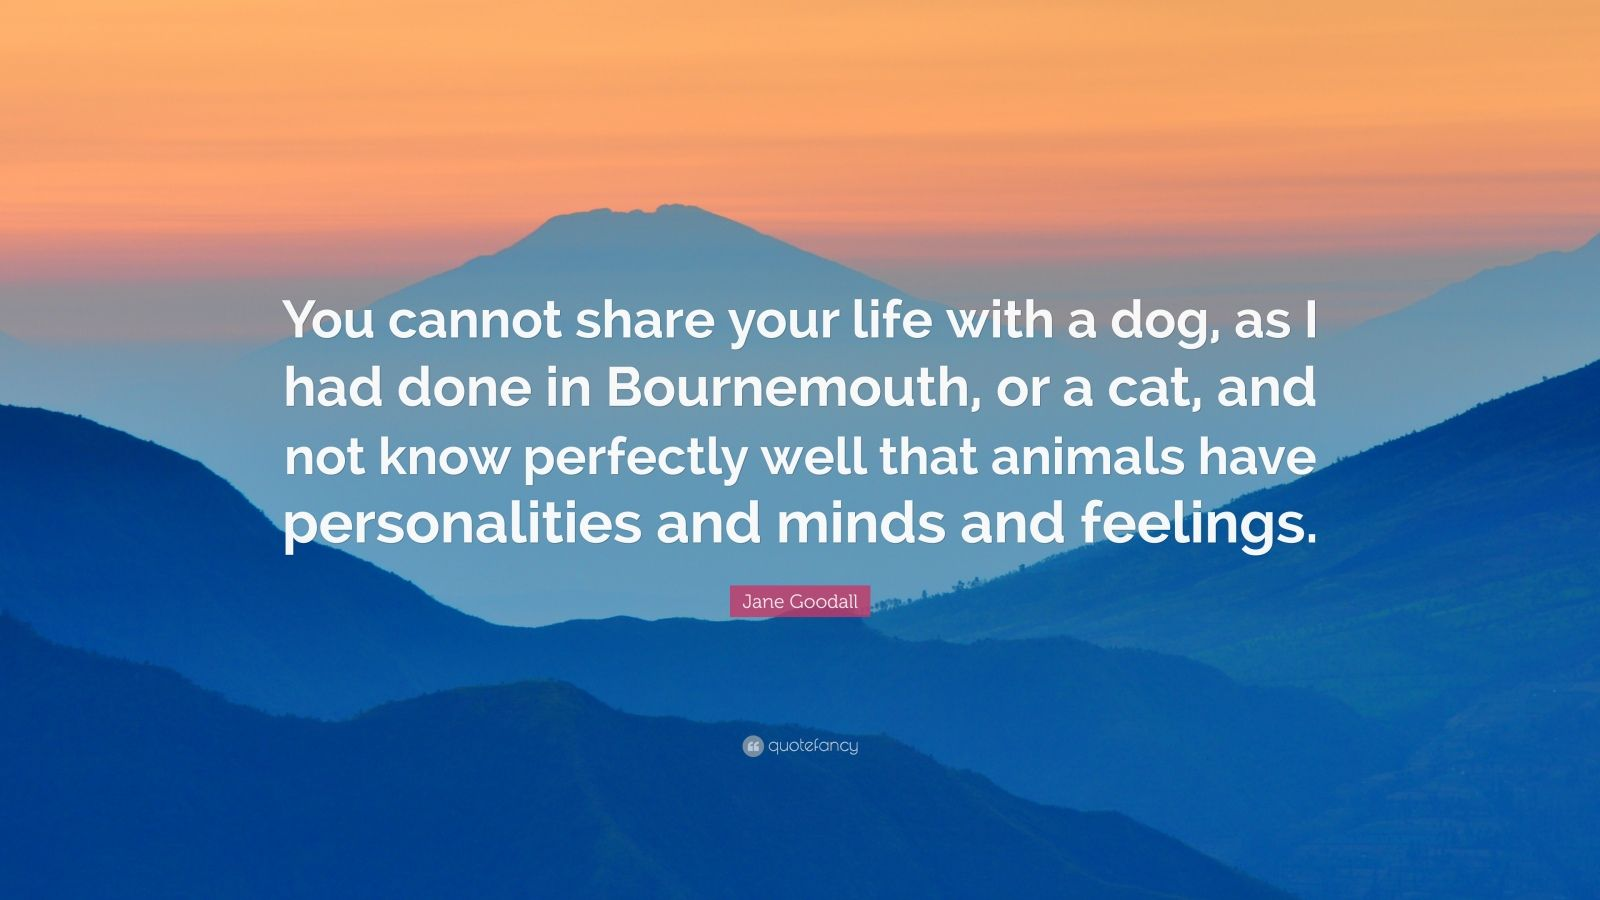 """Jane Goodall Quote: """"You cannot share your life with a dog, as I had done in Bournemouth, or a cat, and not know perfectly well that animals have personalities and minds and feelings."""""""